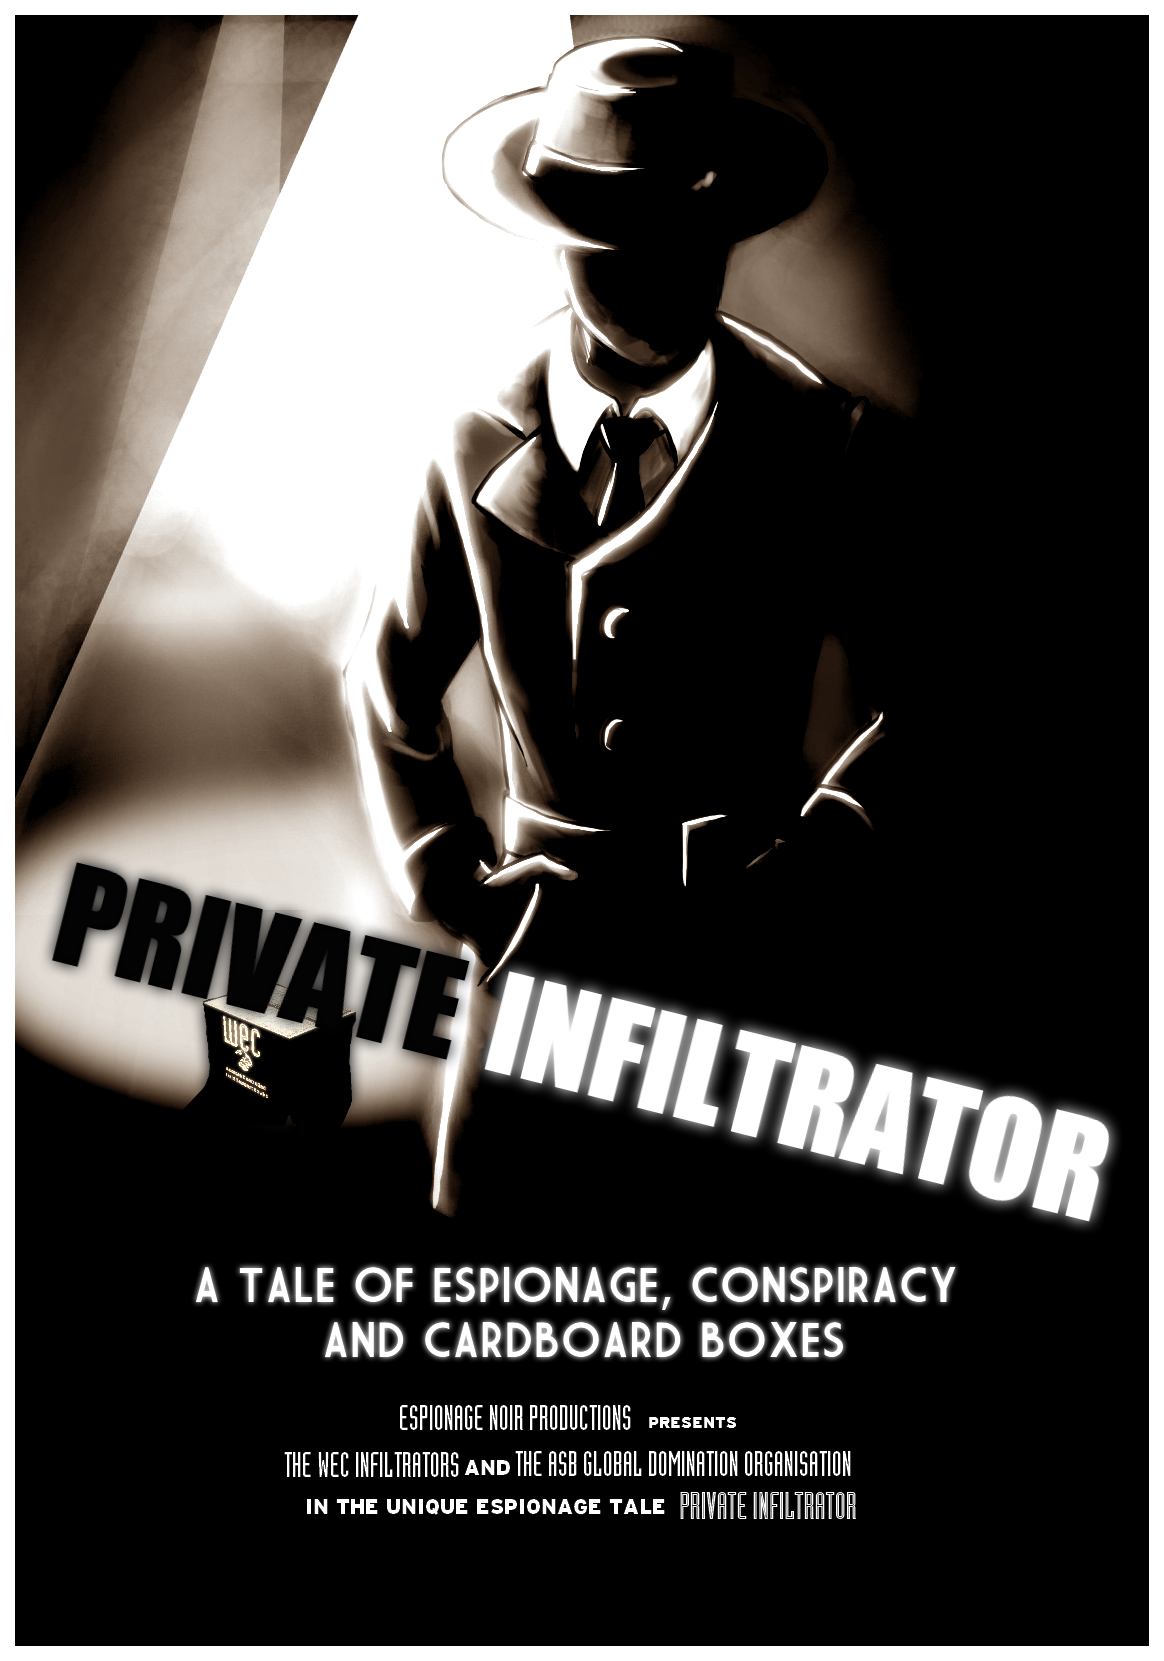 秘密渗入者 Private.Infiltrator-DEFA